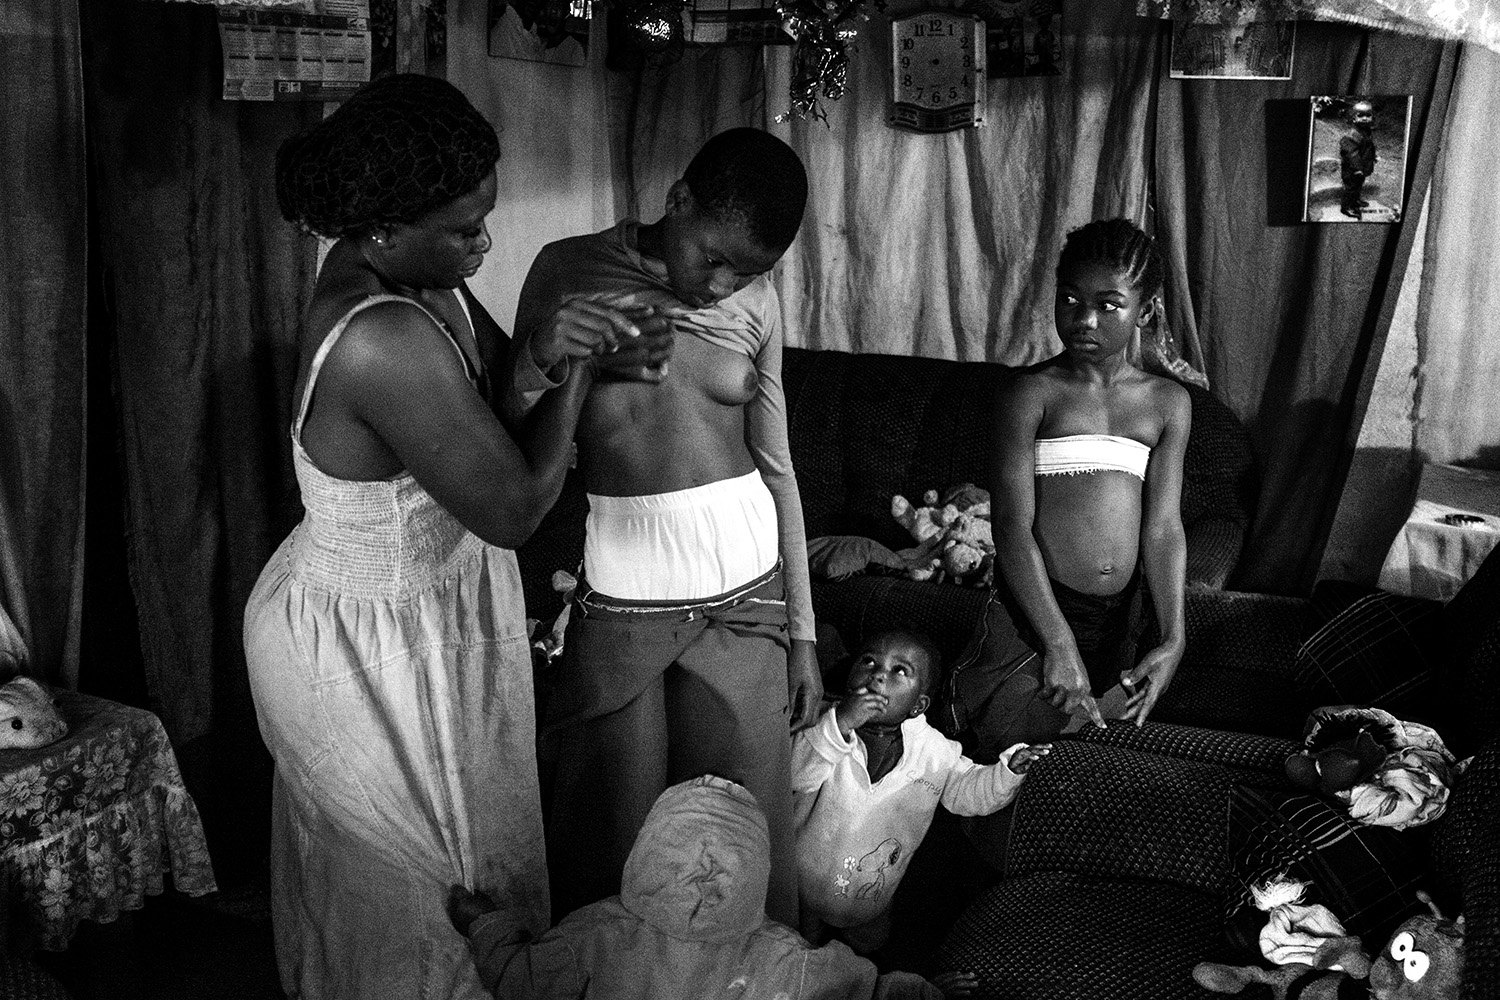 From my series Banned Beauty. Veronica, 28, massages the breasts of her 10-year-old daughter, Michelle, as her other children watch. Her older daughter, not pictured, refused to have her breasts ironed and became pregnant at the age of 14. Determined to keep her younger girls from making the same mistake, Veronica ironed their breasts. This is near the city of Bafoussam in Cameroon, Africa.